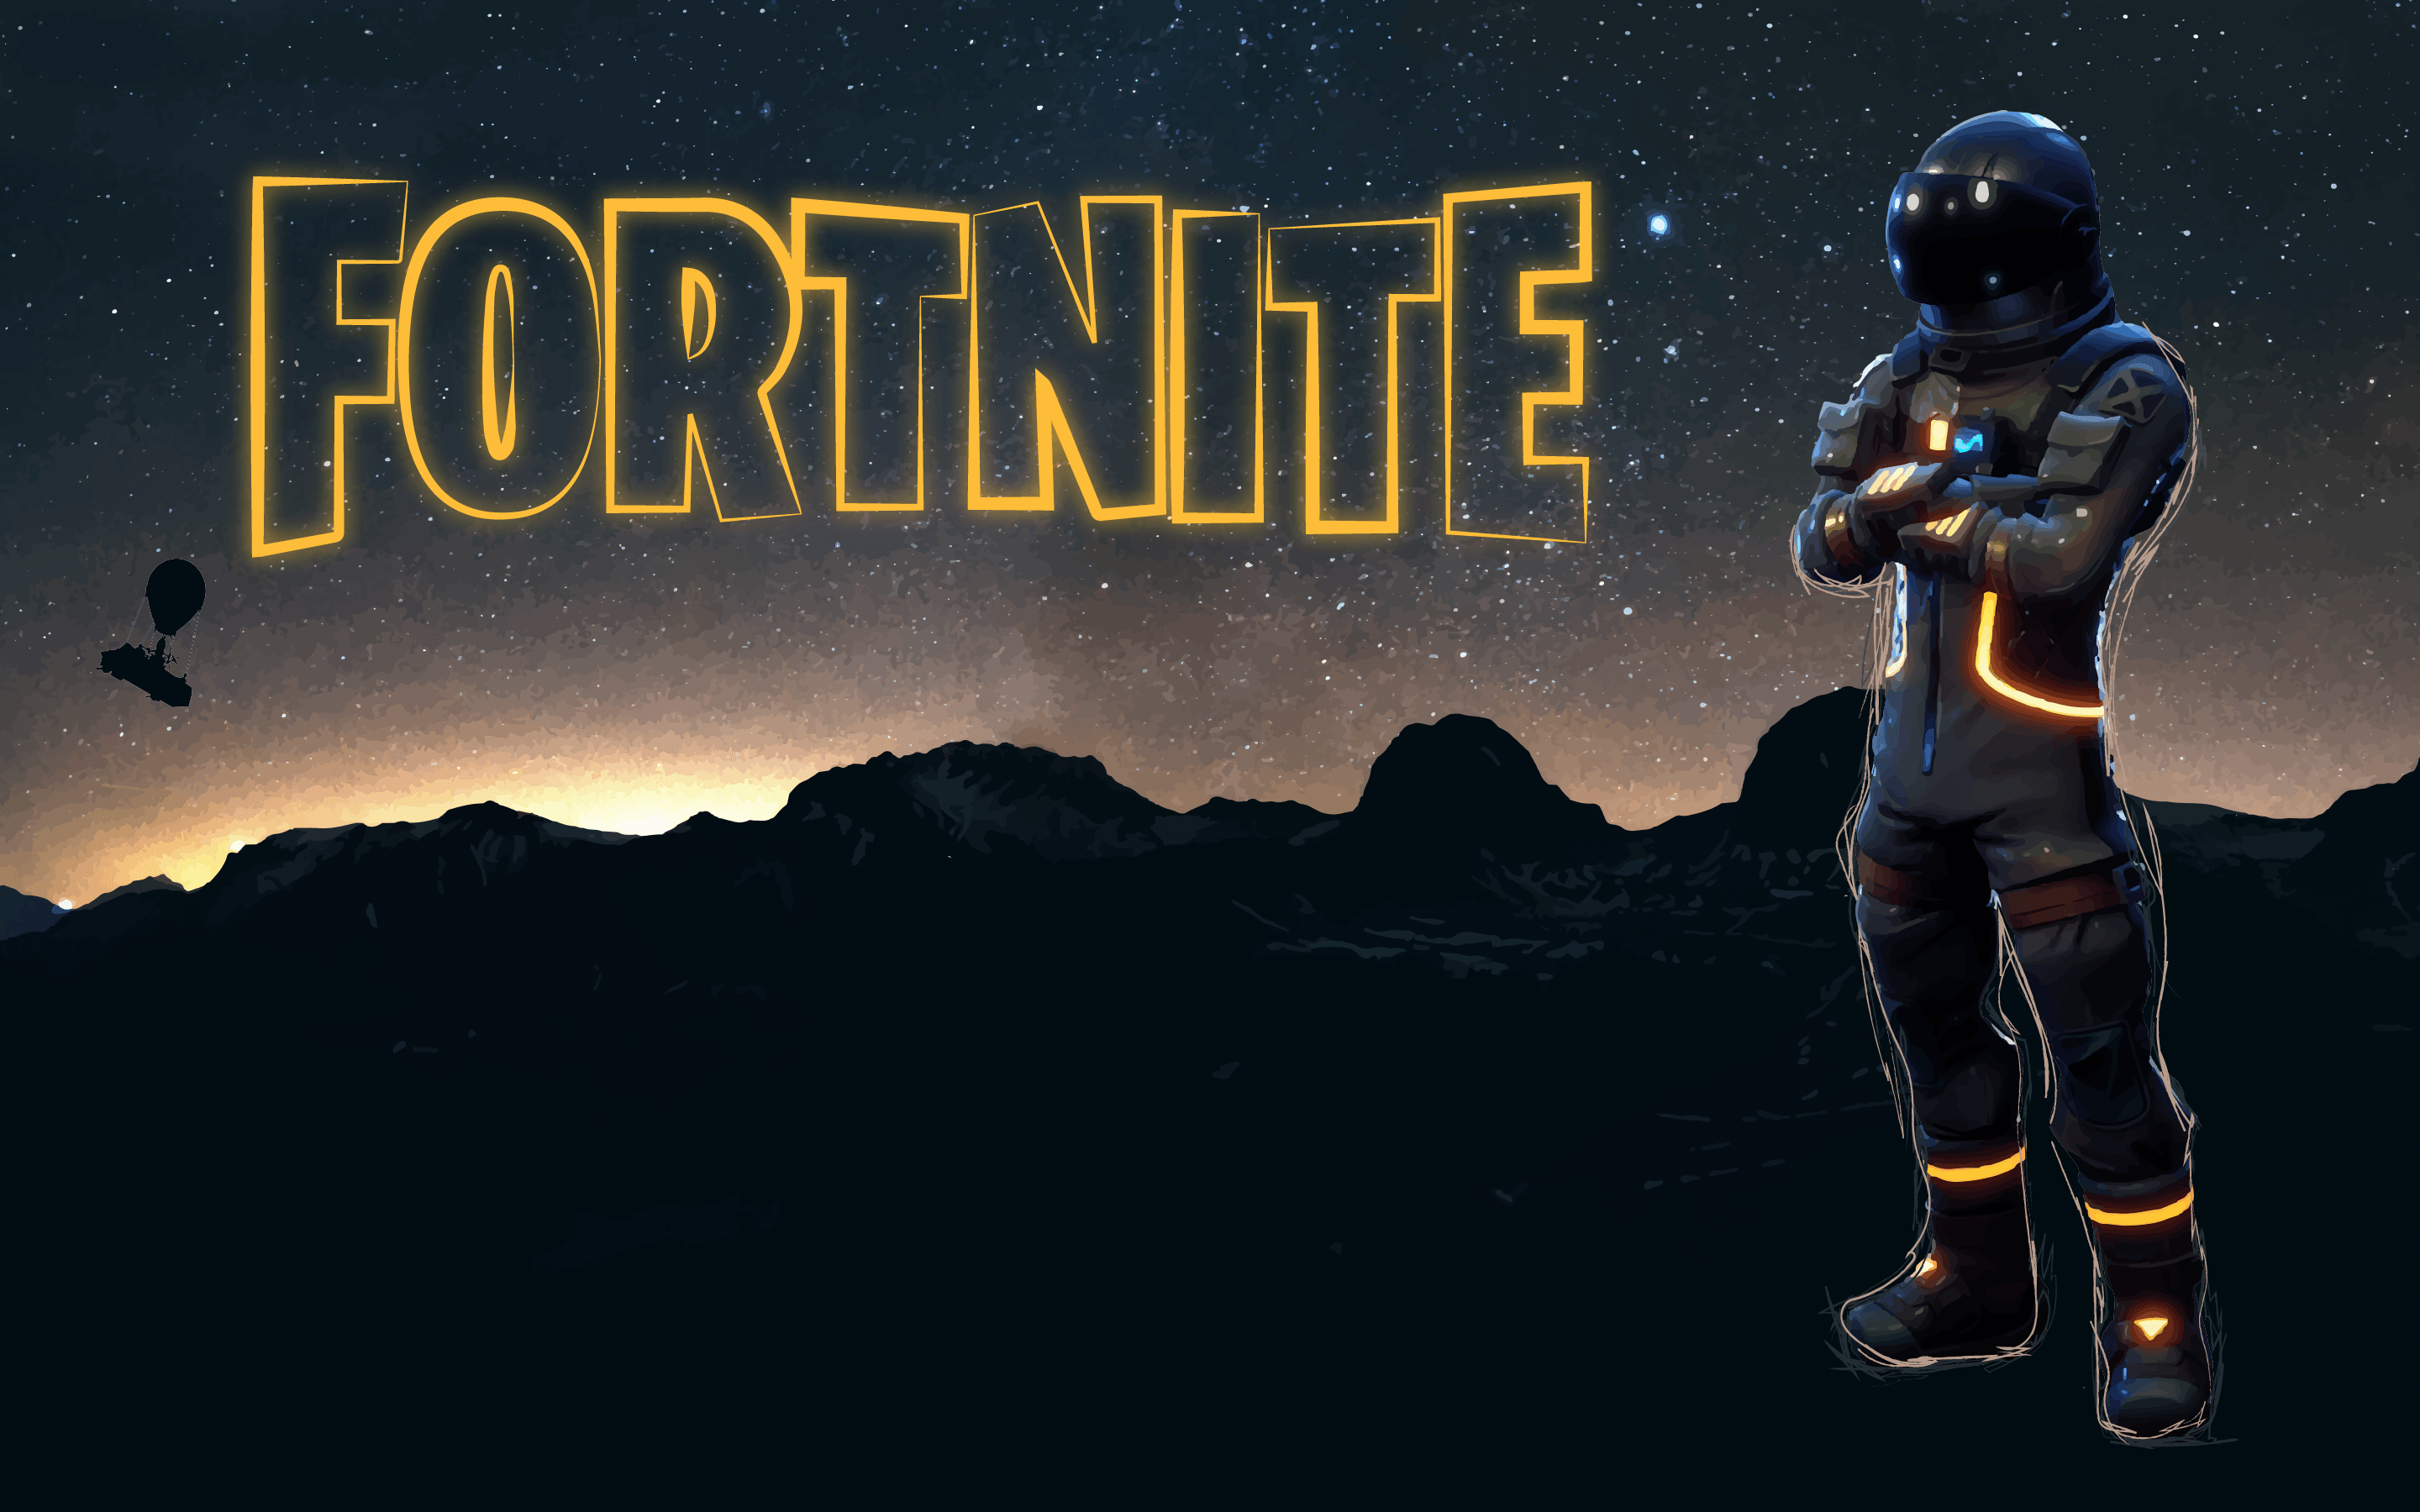 Fortnite Dark Voyager Wallpapers 1 - 2880 X 1800 | Imgnooz.com